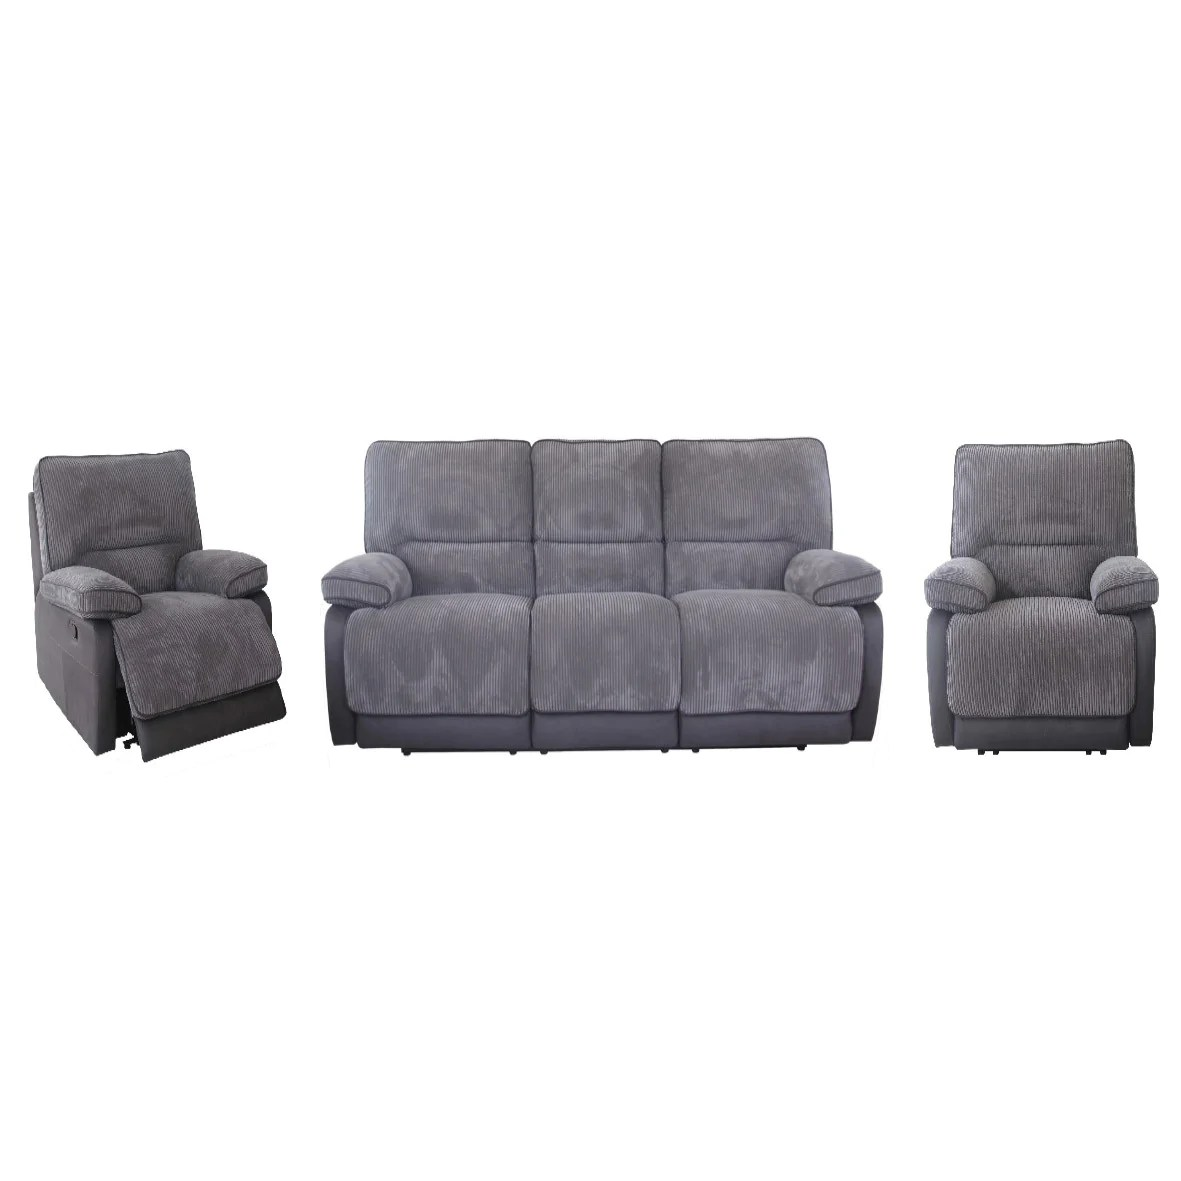 Furniture Clearance Vancouver Vancouver Full Motion Lounge And Recliners Fcw